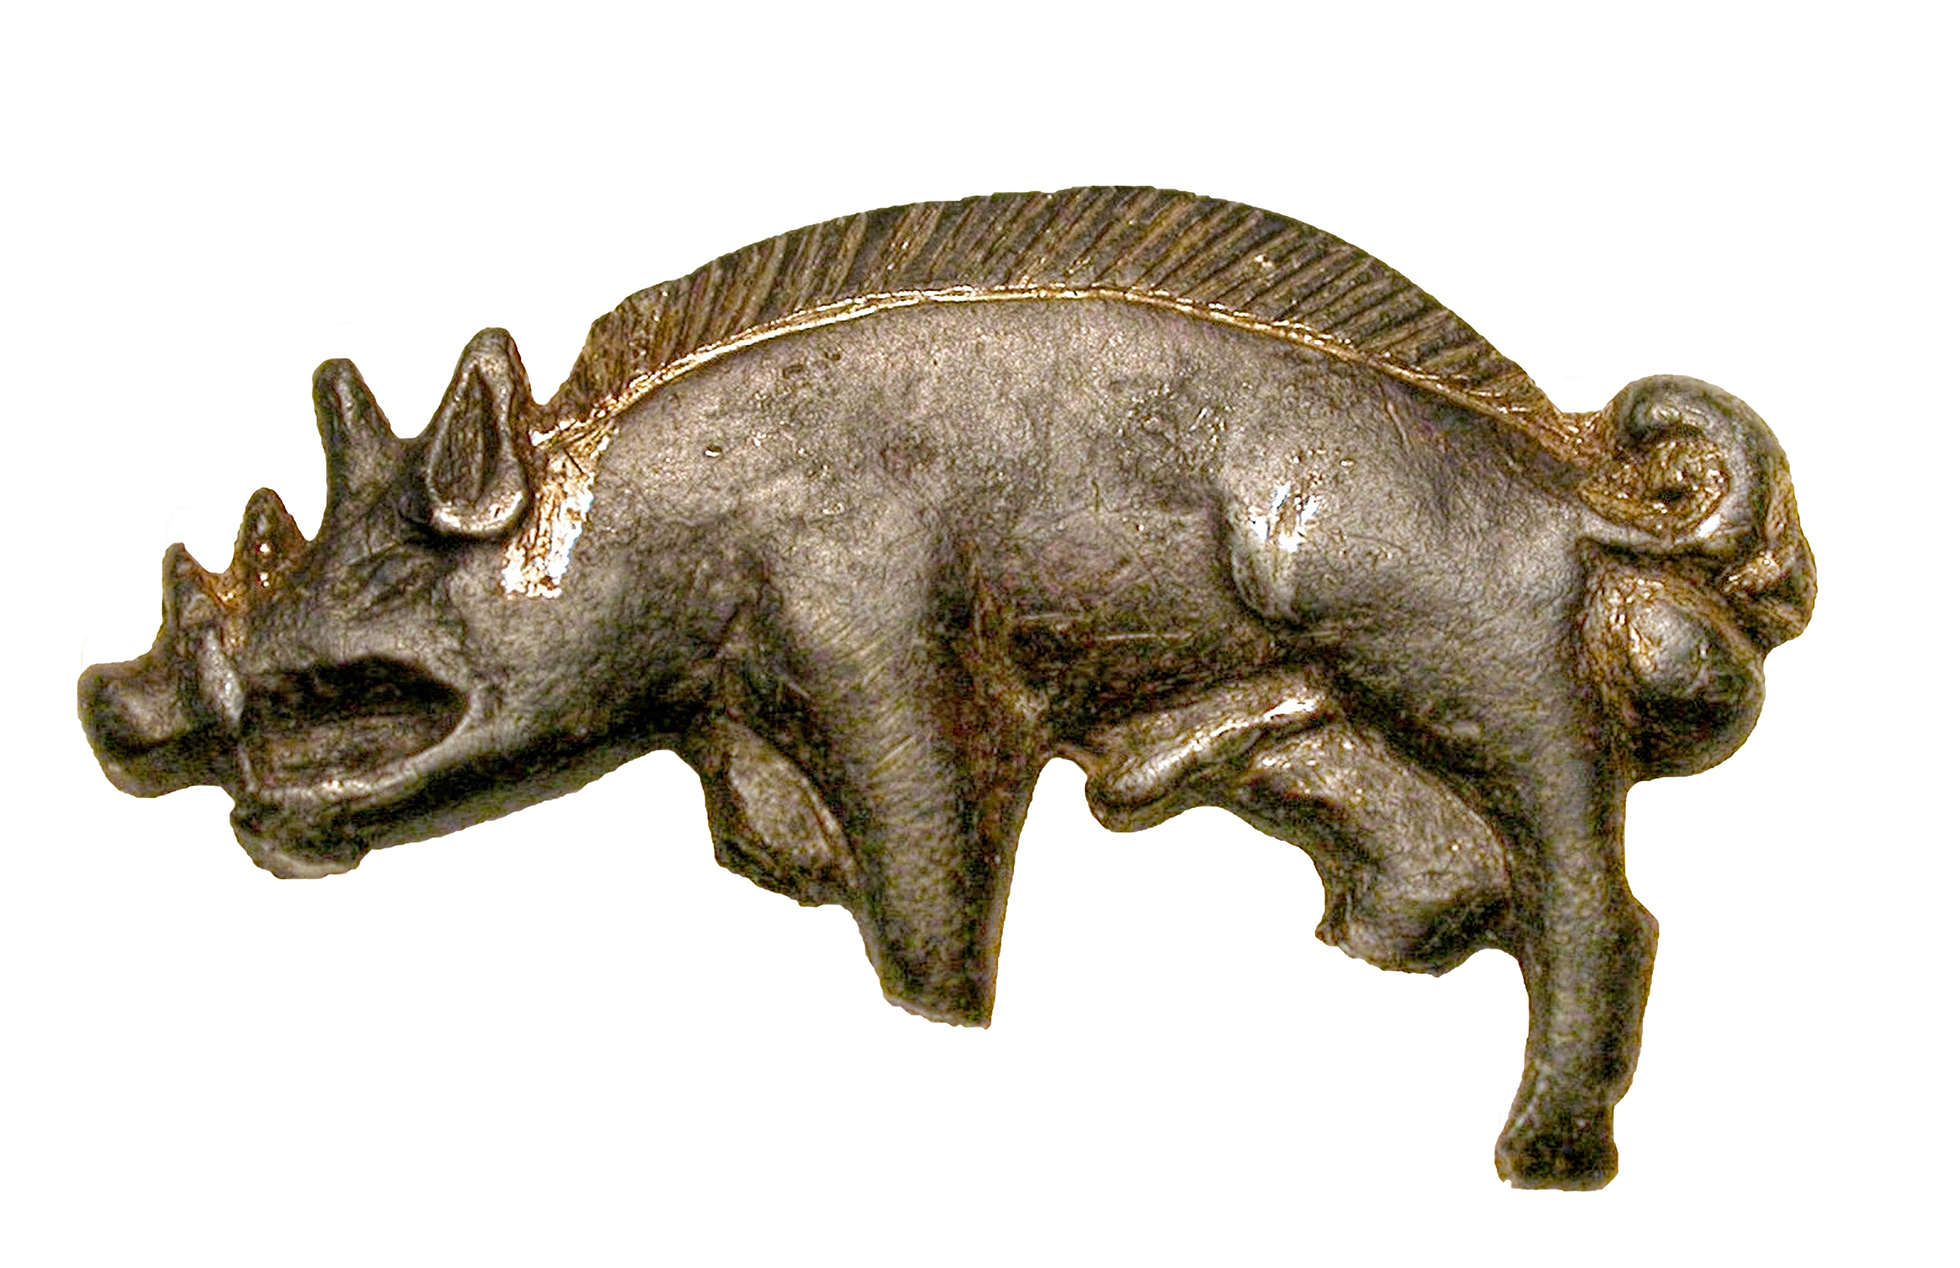 A badge in the shape of a wild boar, in silver gilt. both front legs are broken, and one of the hind legs is missing.